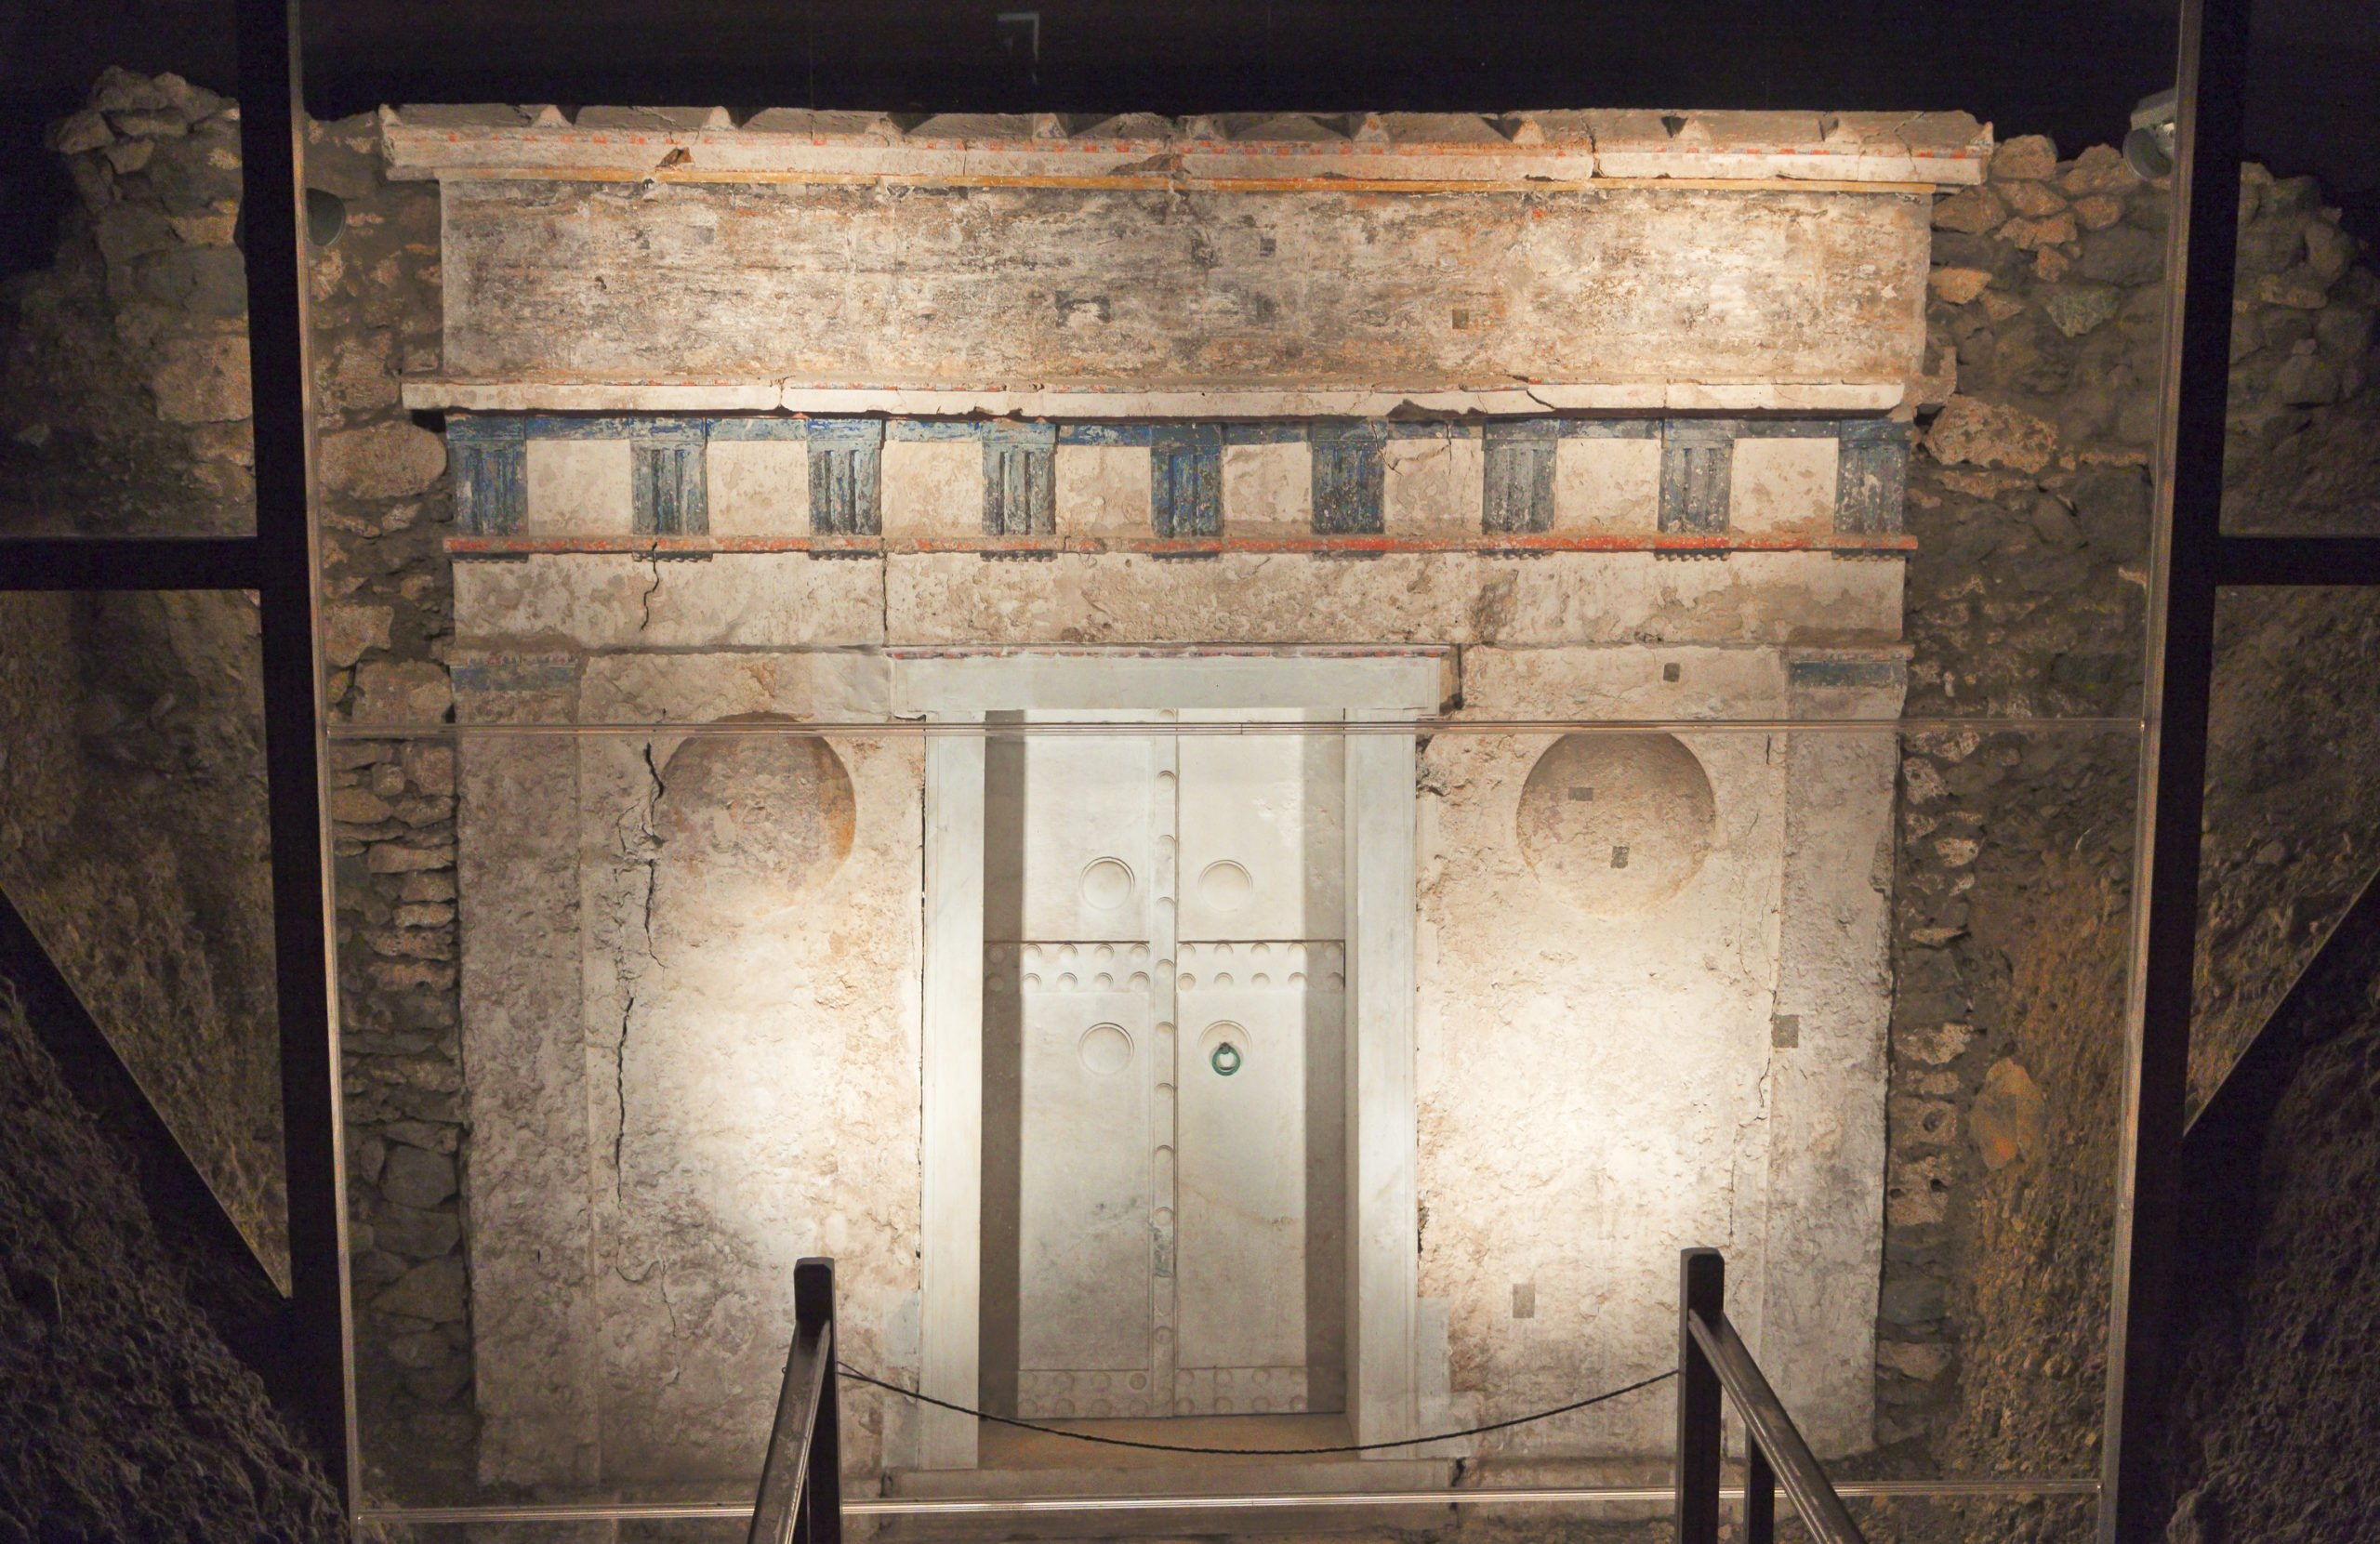 Visit The Royal Tomb Of King Philip The Second On The Pella & Vergina Tour From Thessaloniki